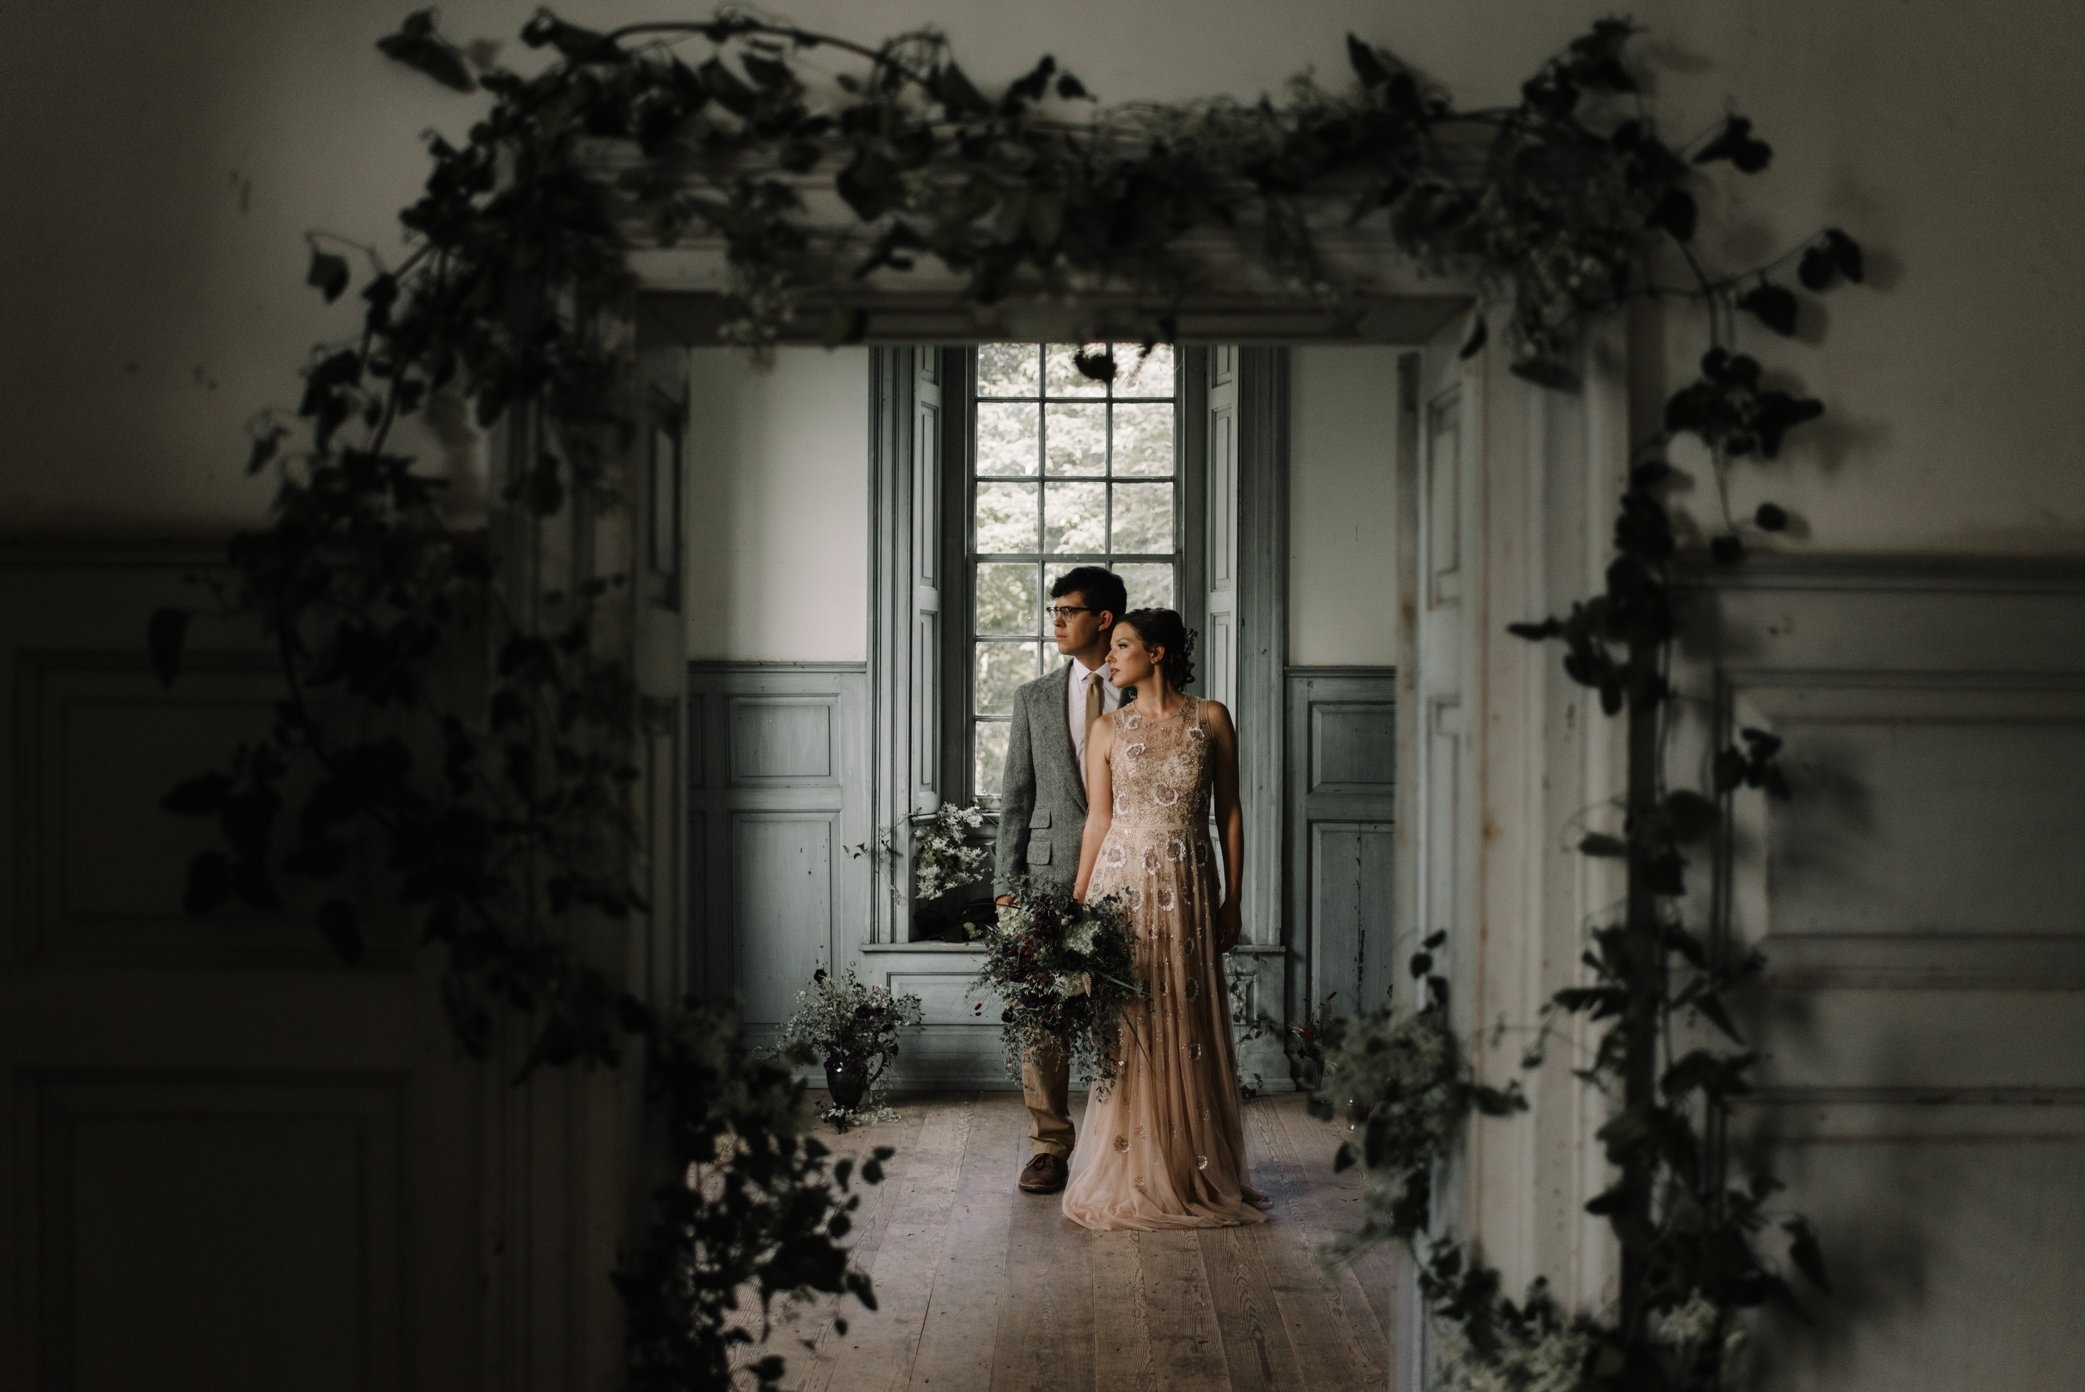 Salubria Historic Manor House Virginia - Moody Scottish Highland Wedding Styled Shoot - White Sails Creative - Sage and Silhouettes - BHLDN - Bijous Sweet Treats_119.JPG